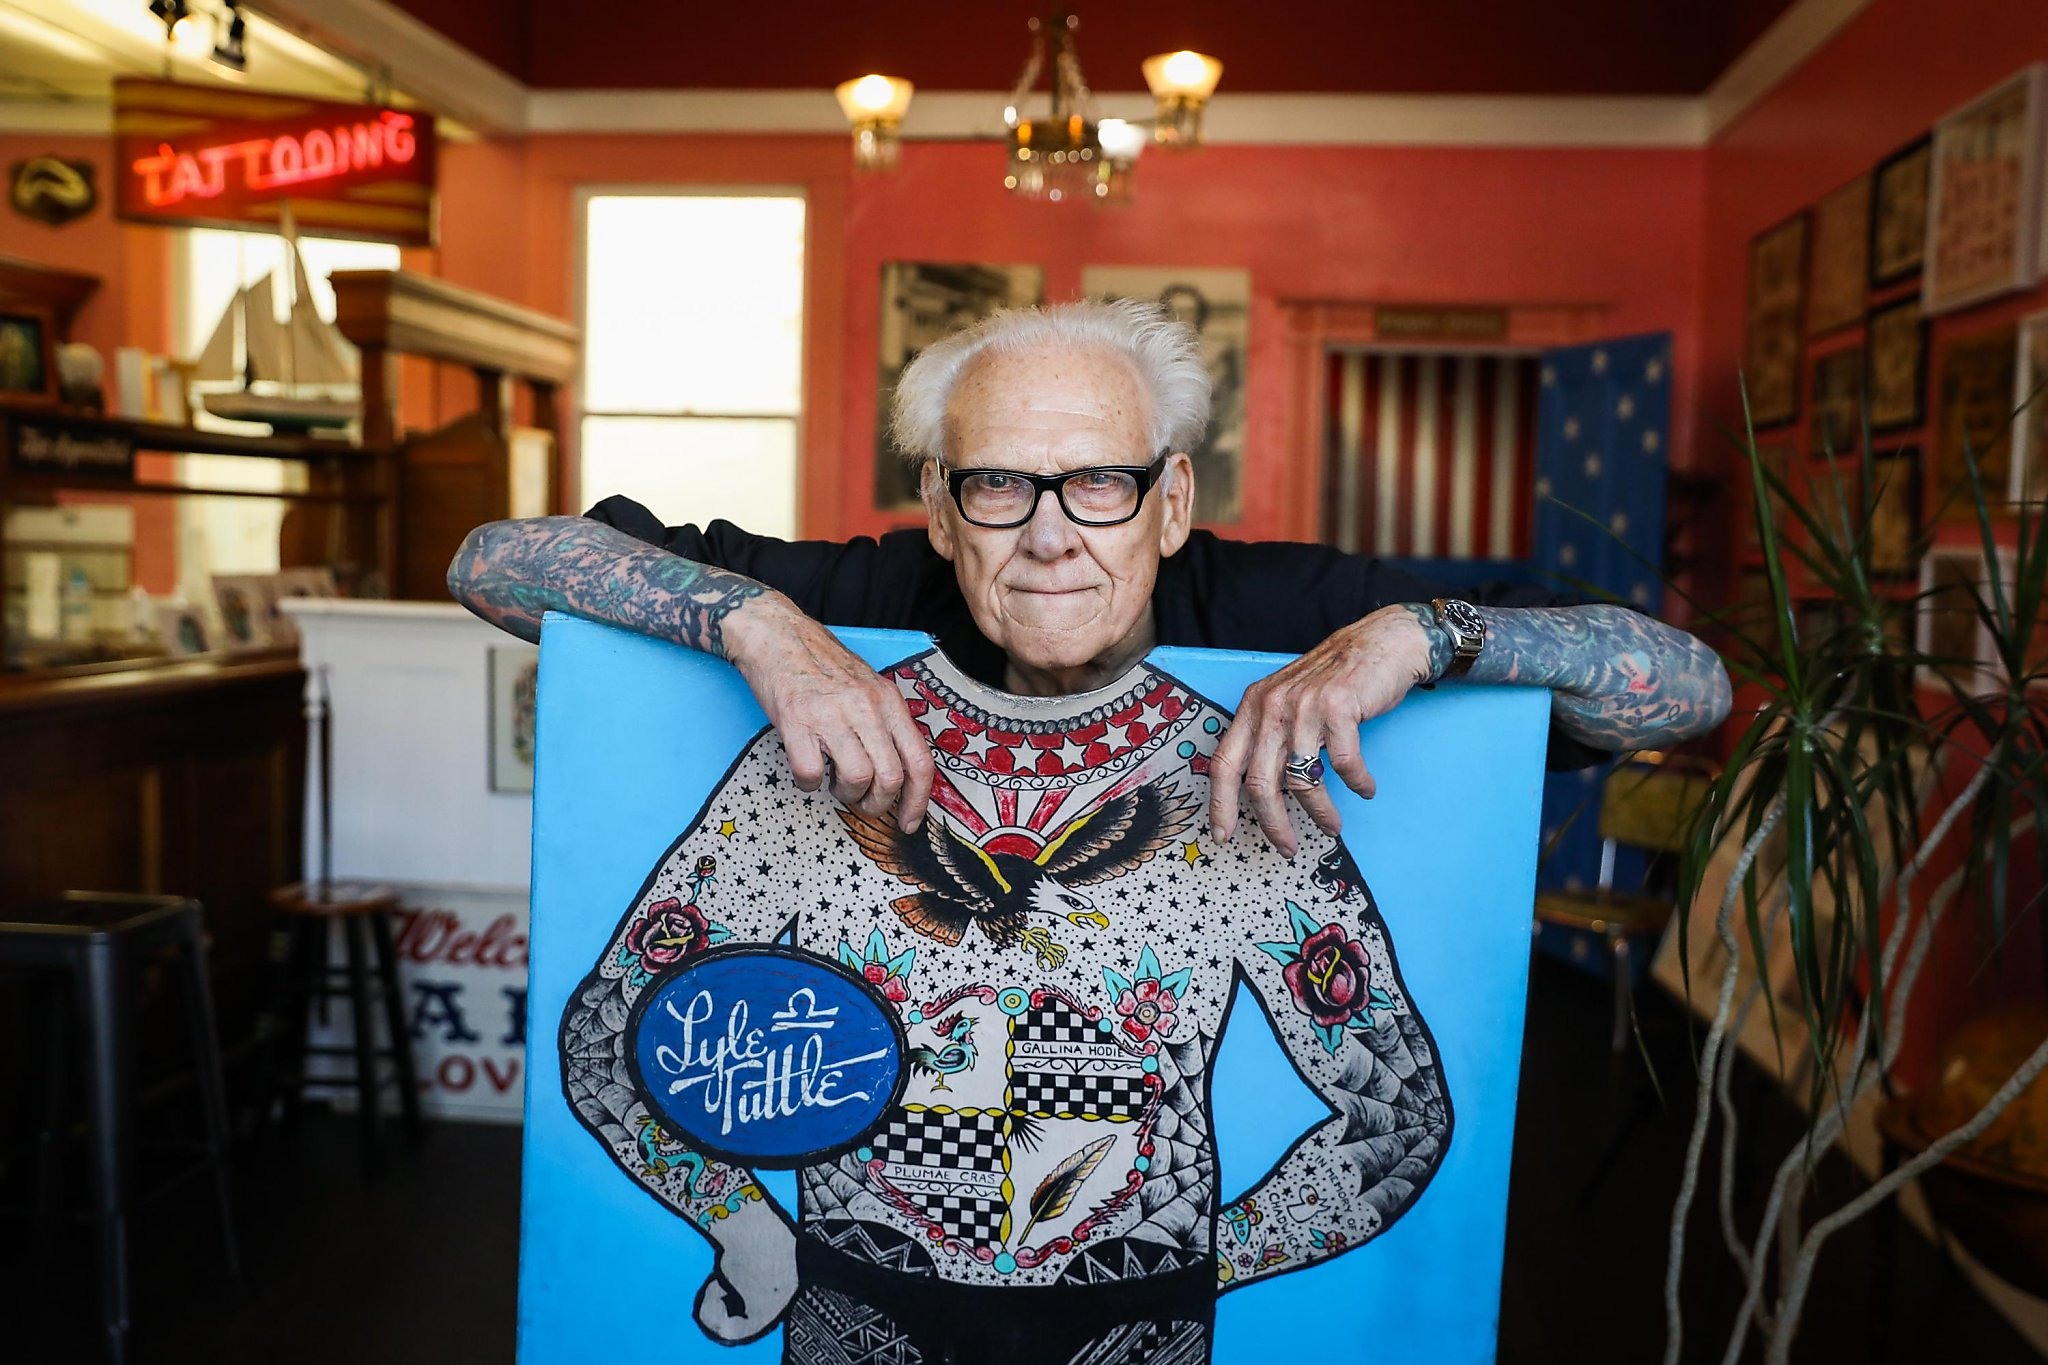 Lyle Tuttle Early Tattoo Artist Leaves Indelible Mark On Ideas And Designs